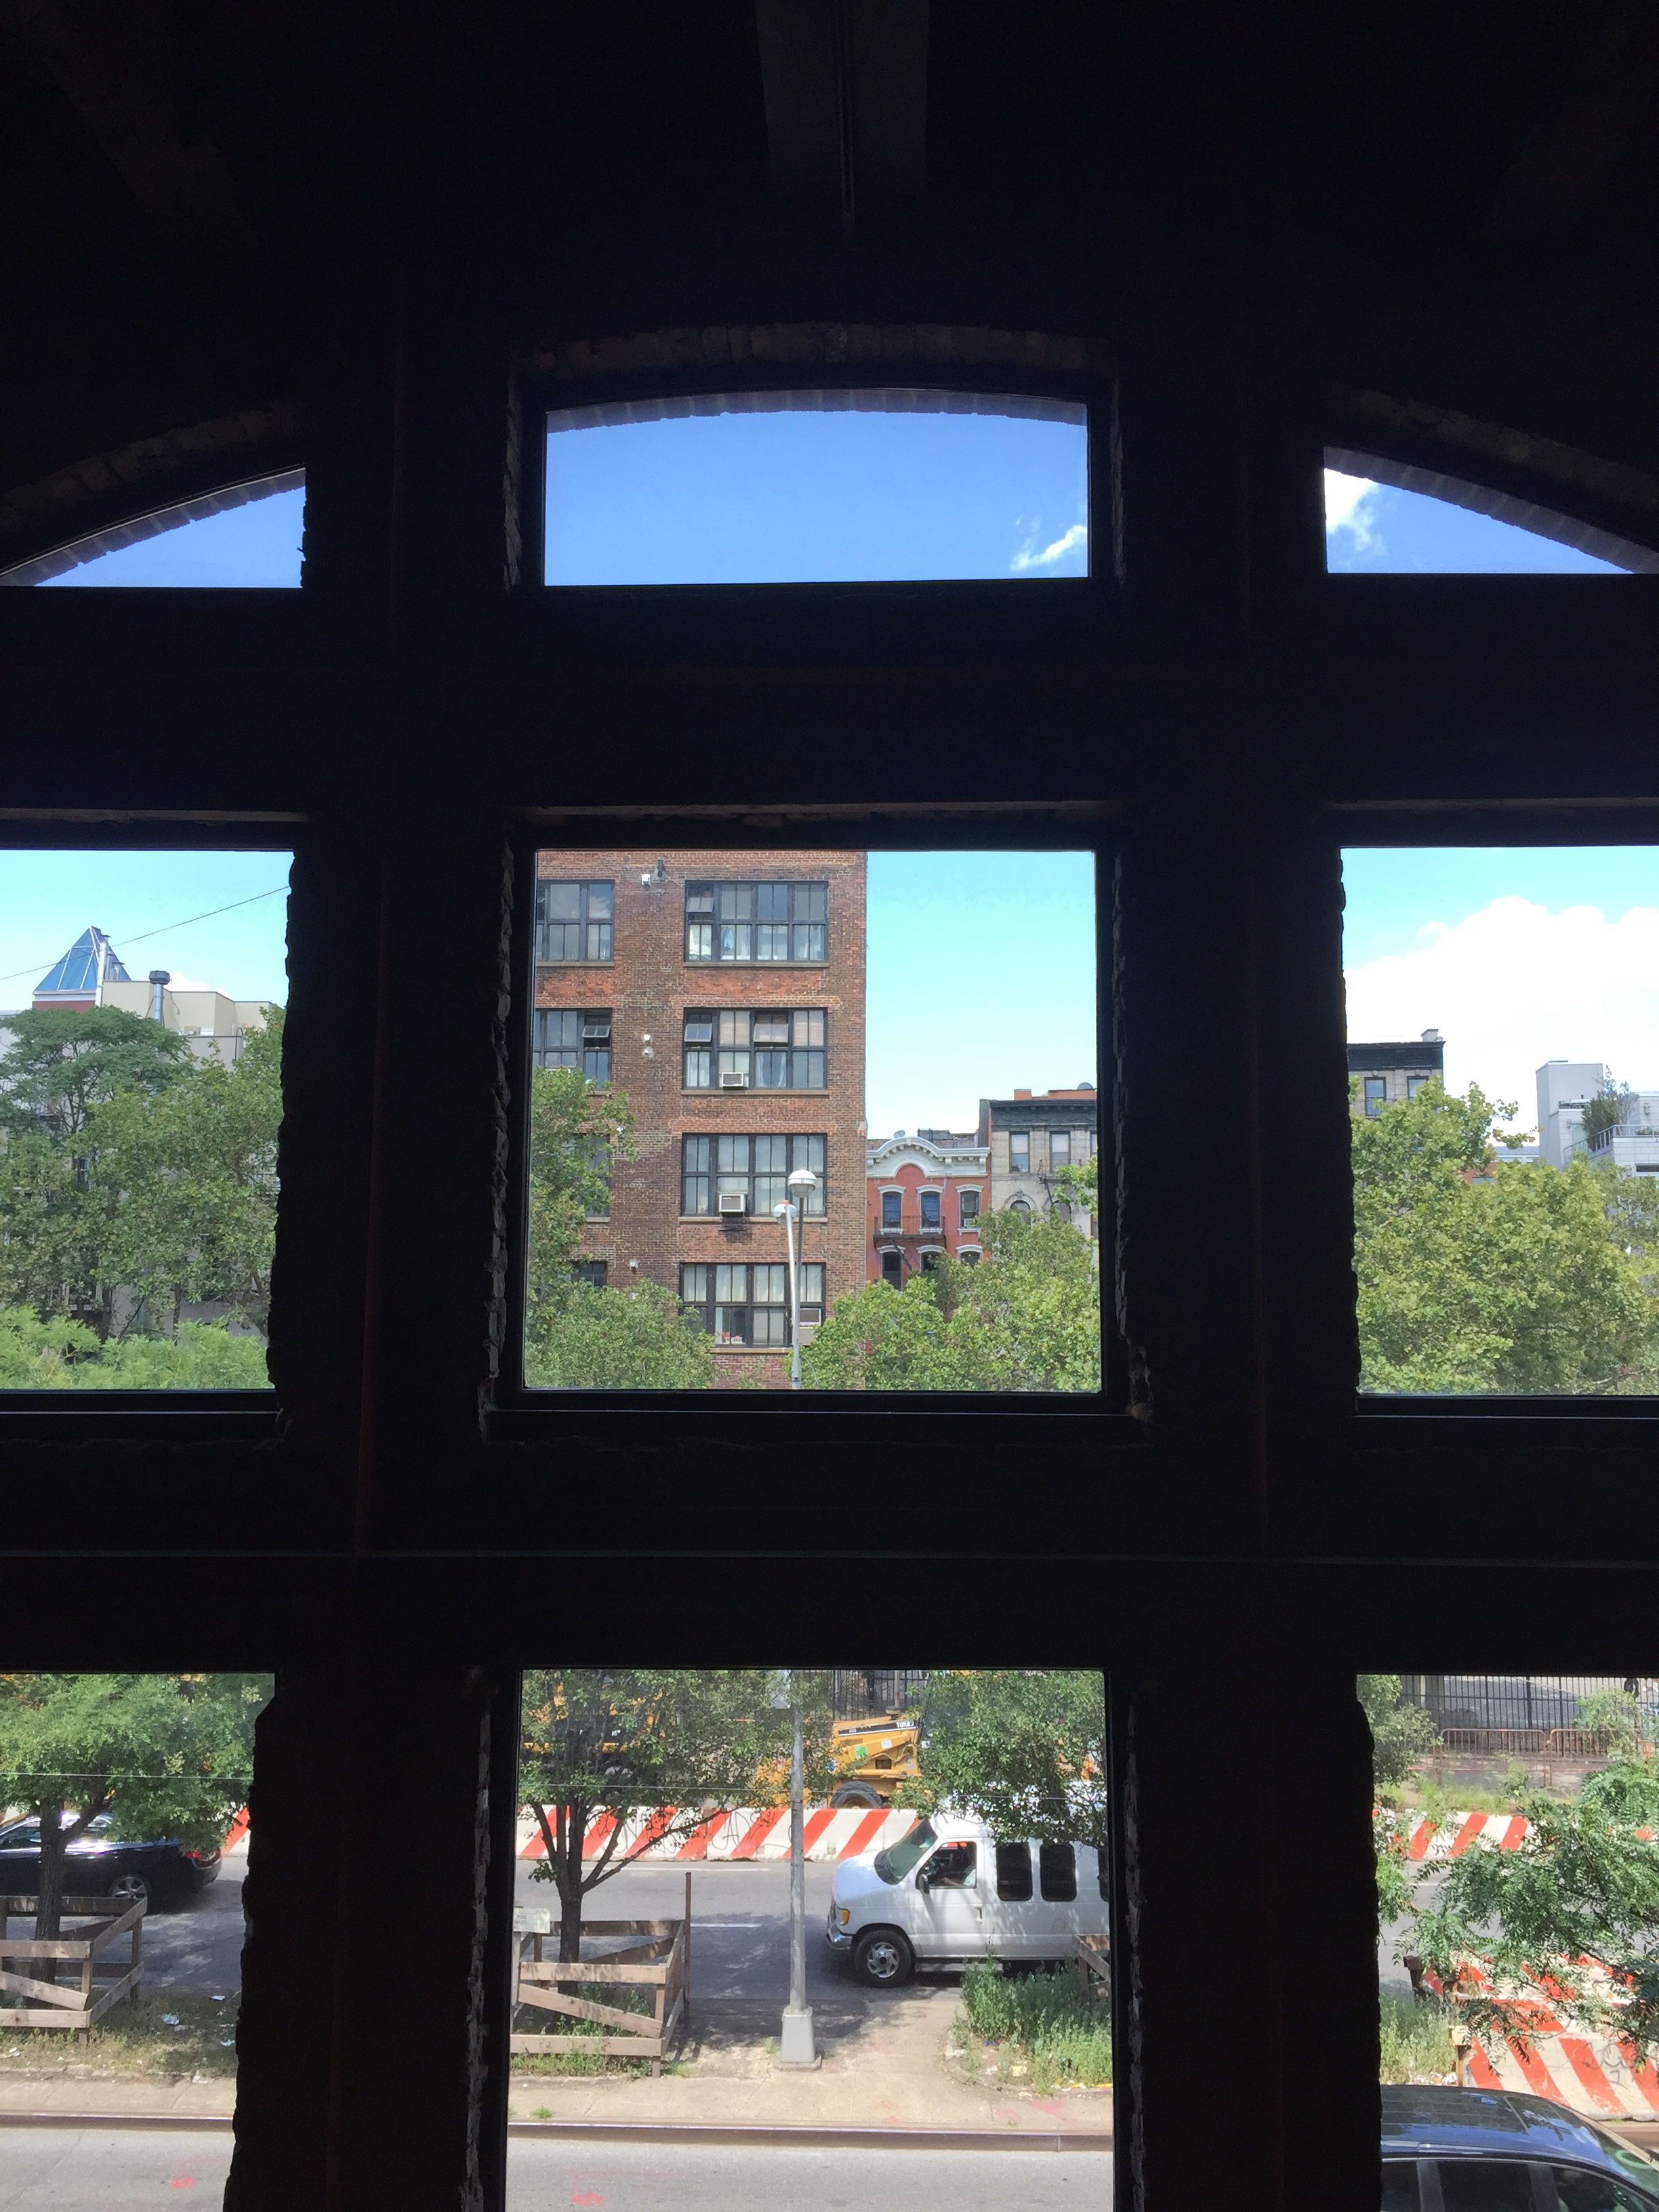 View from the Sunshine Cinema in the Lower East Side.